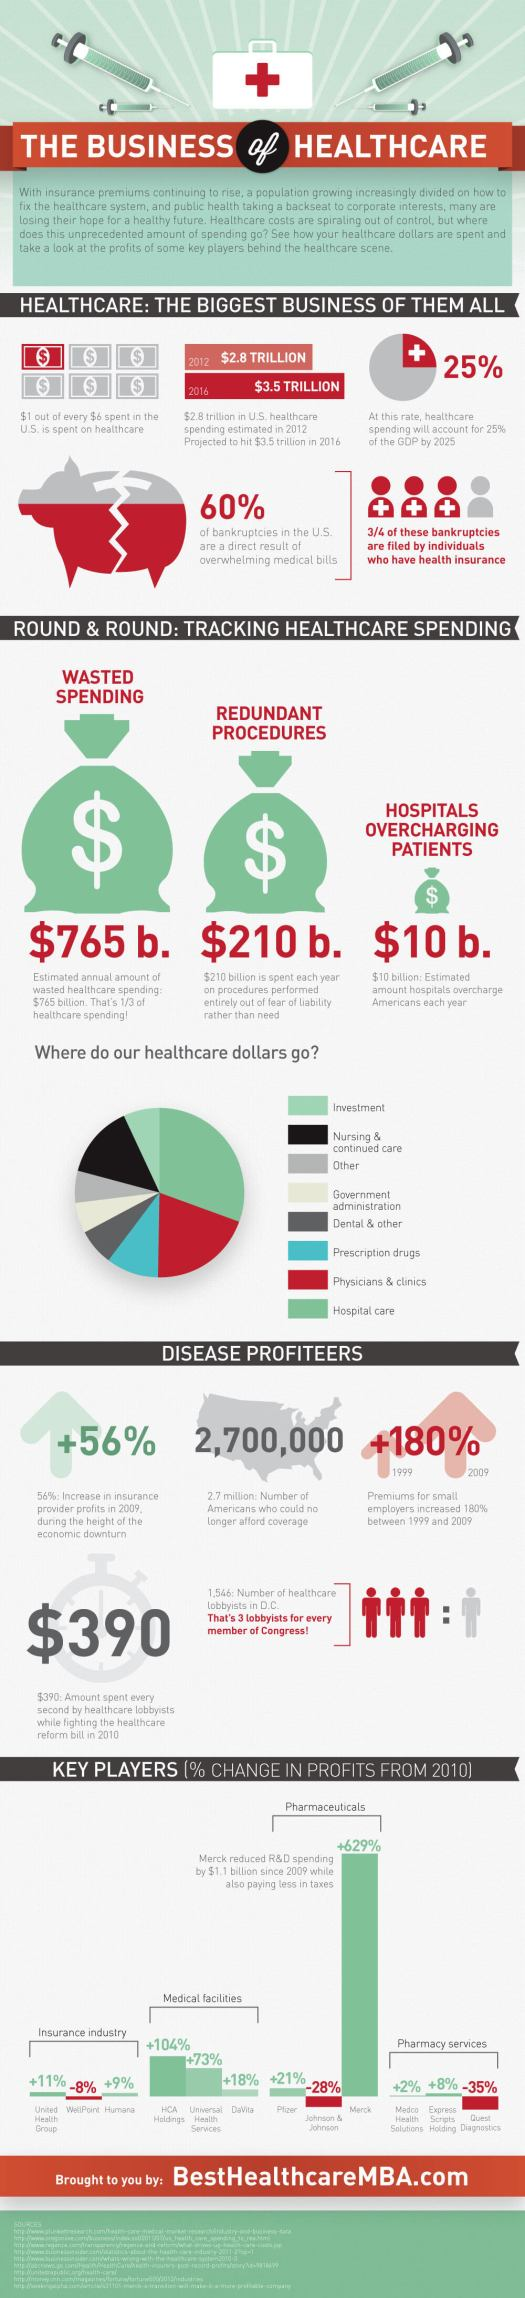 business of healthcare1 - Healthcare is Big Business: (And the Most Wasteful) [INFOGRAPHIC]